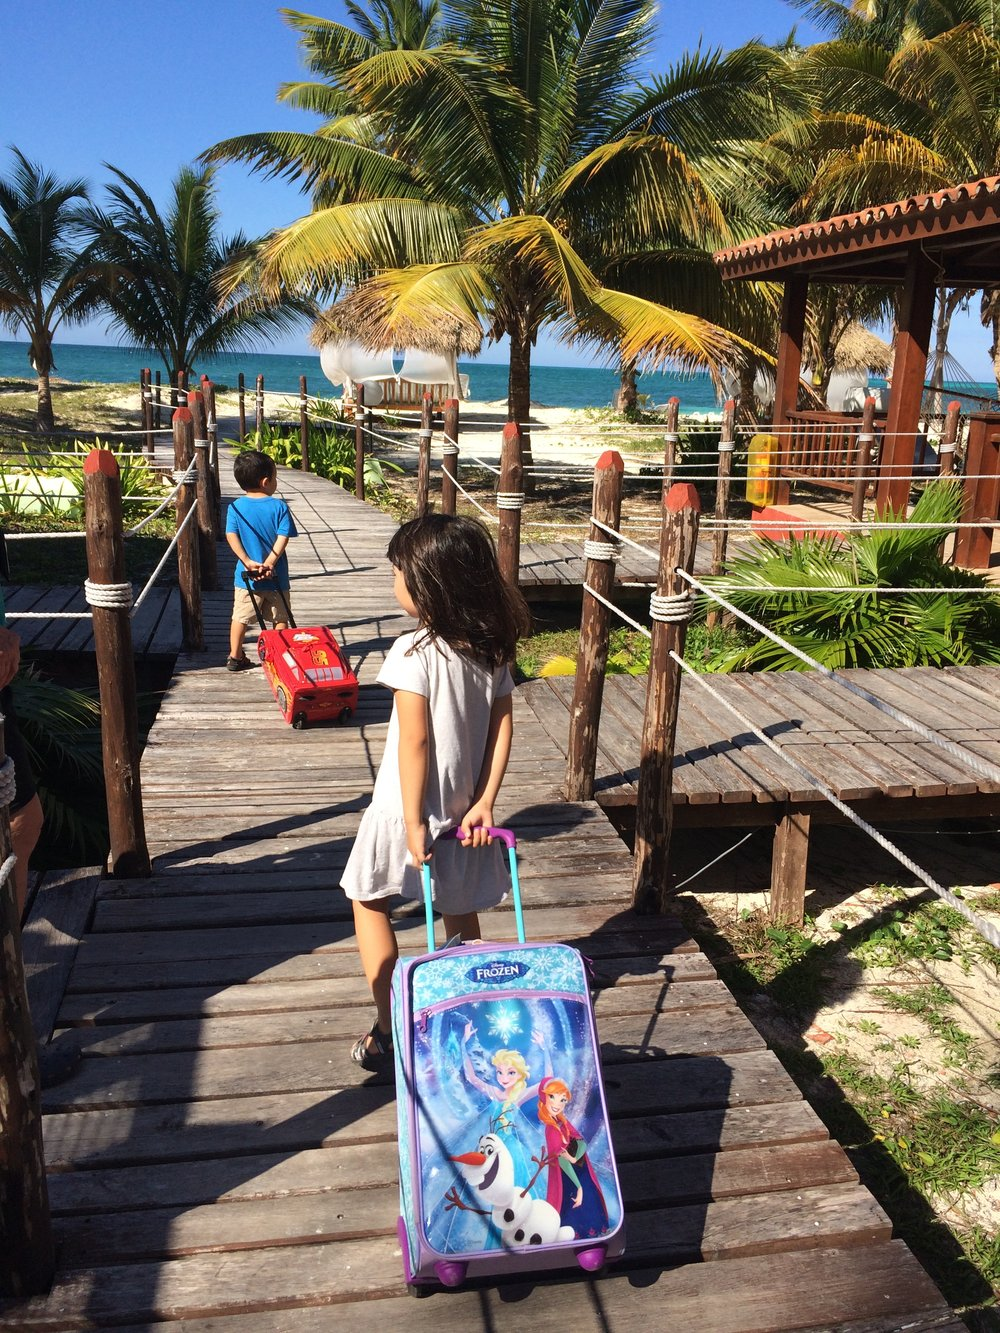 Arriving on an island for a beach vacation, just off the main island of Cuba where we live.